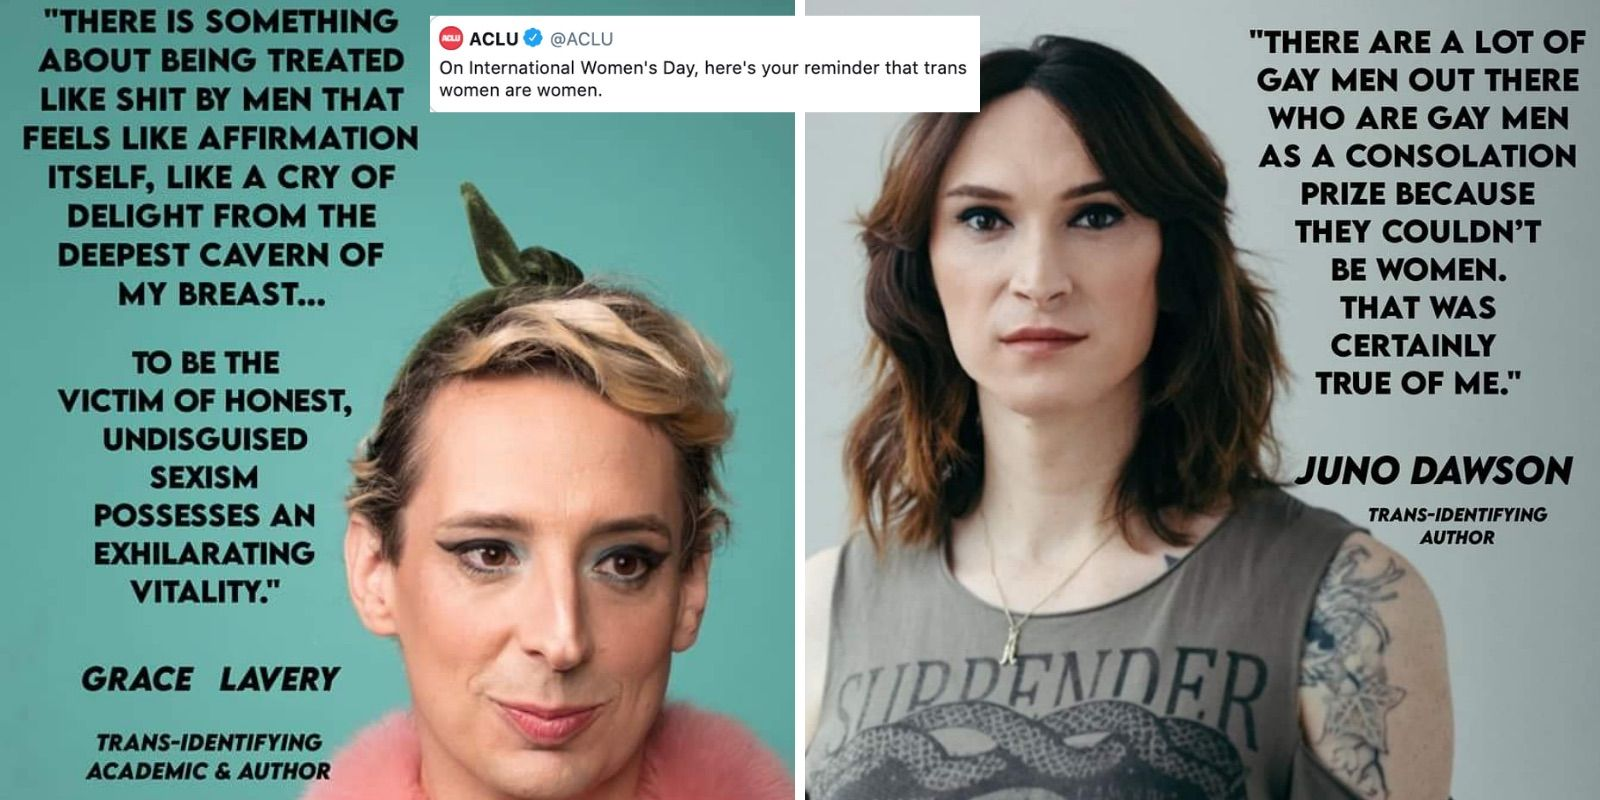 International Women's Day narrative hijacked by trans rights activists